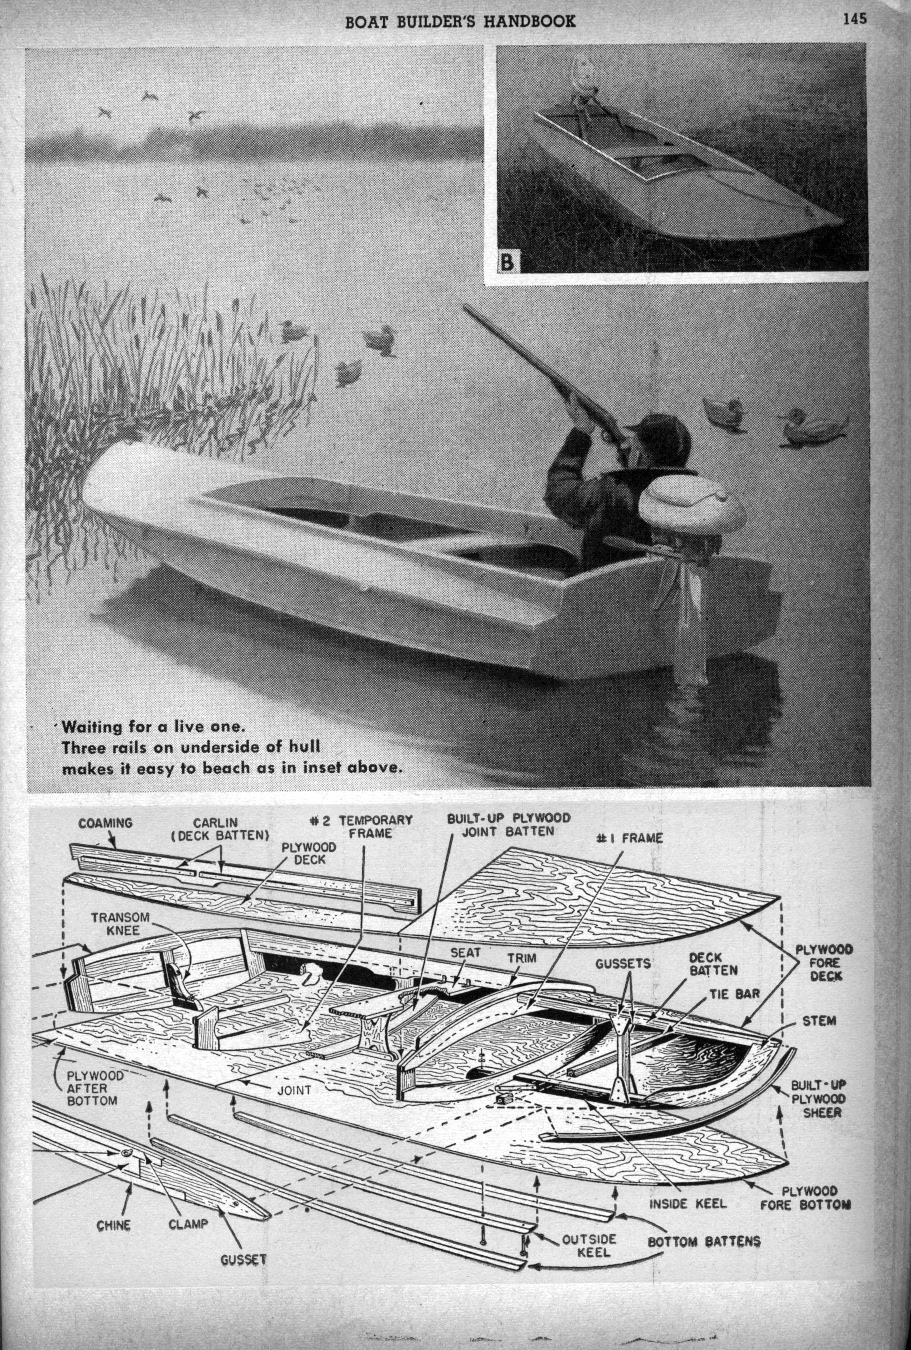 Sneak Boat Plans submited images.